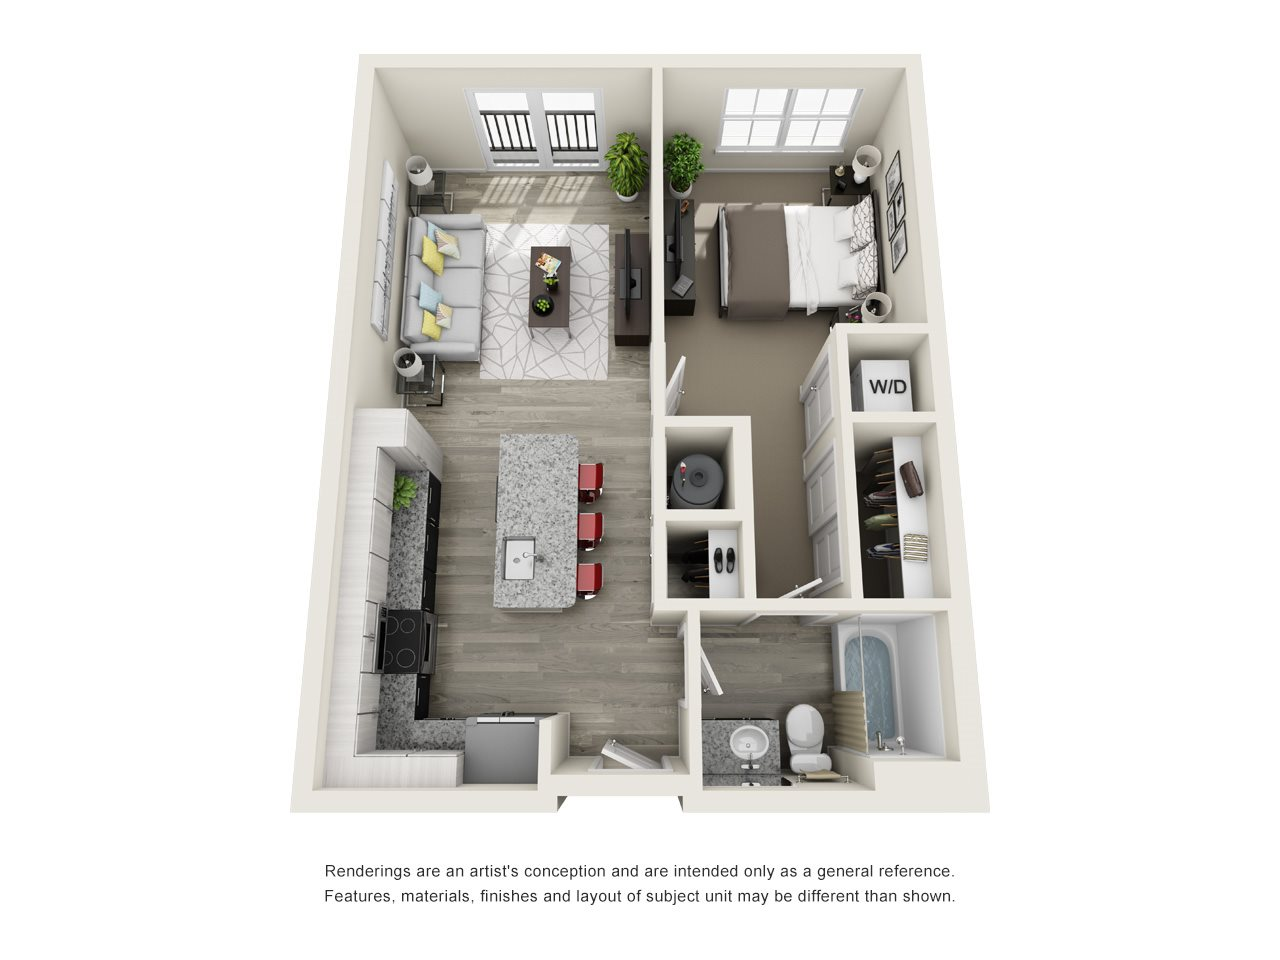 1 Bedroom, 1 Bath 684 sqft Floor Plan 3